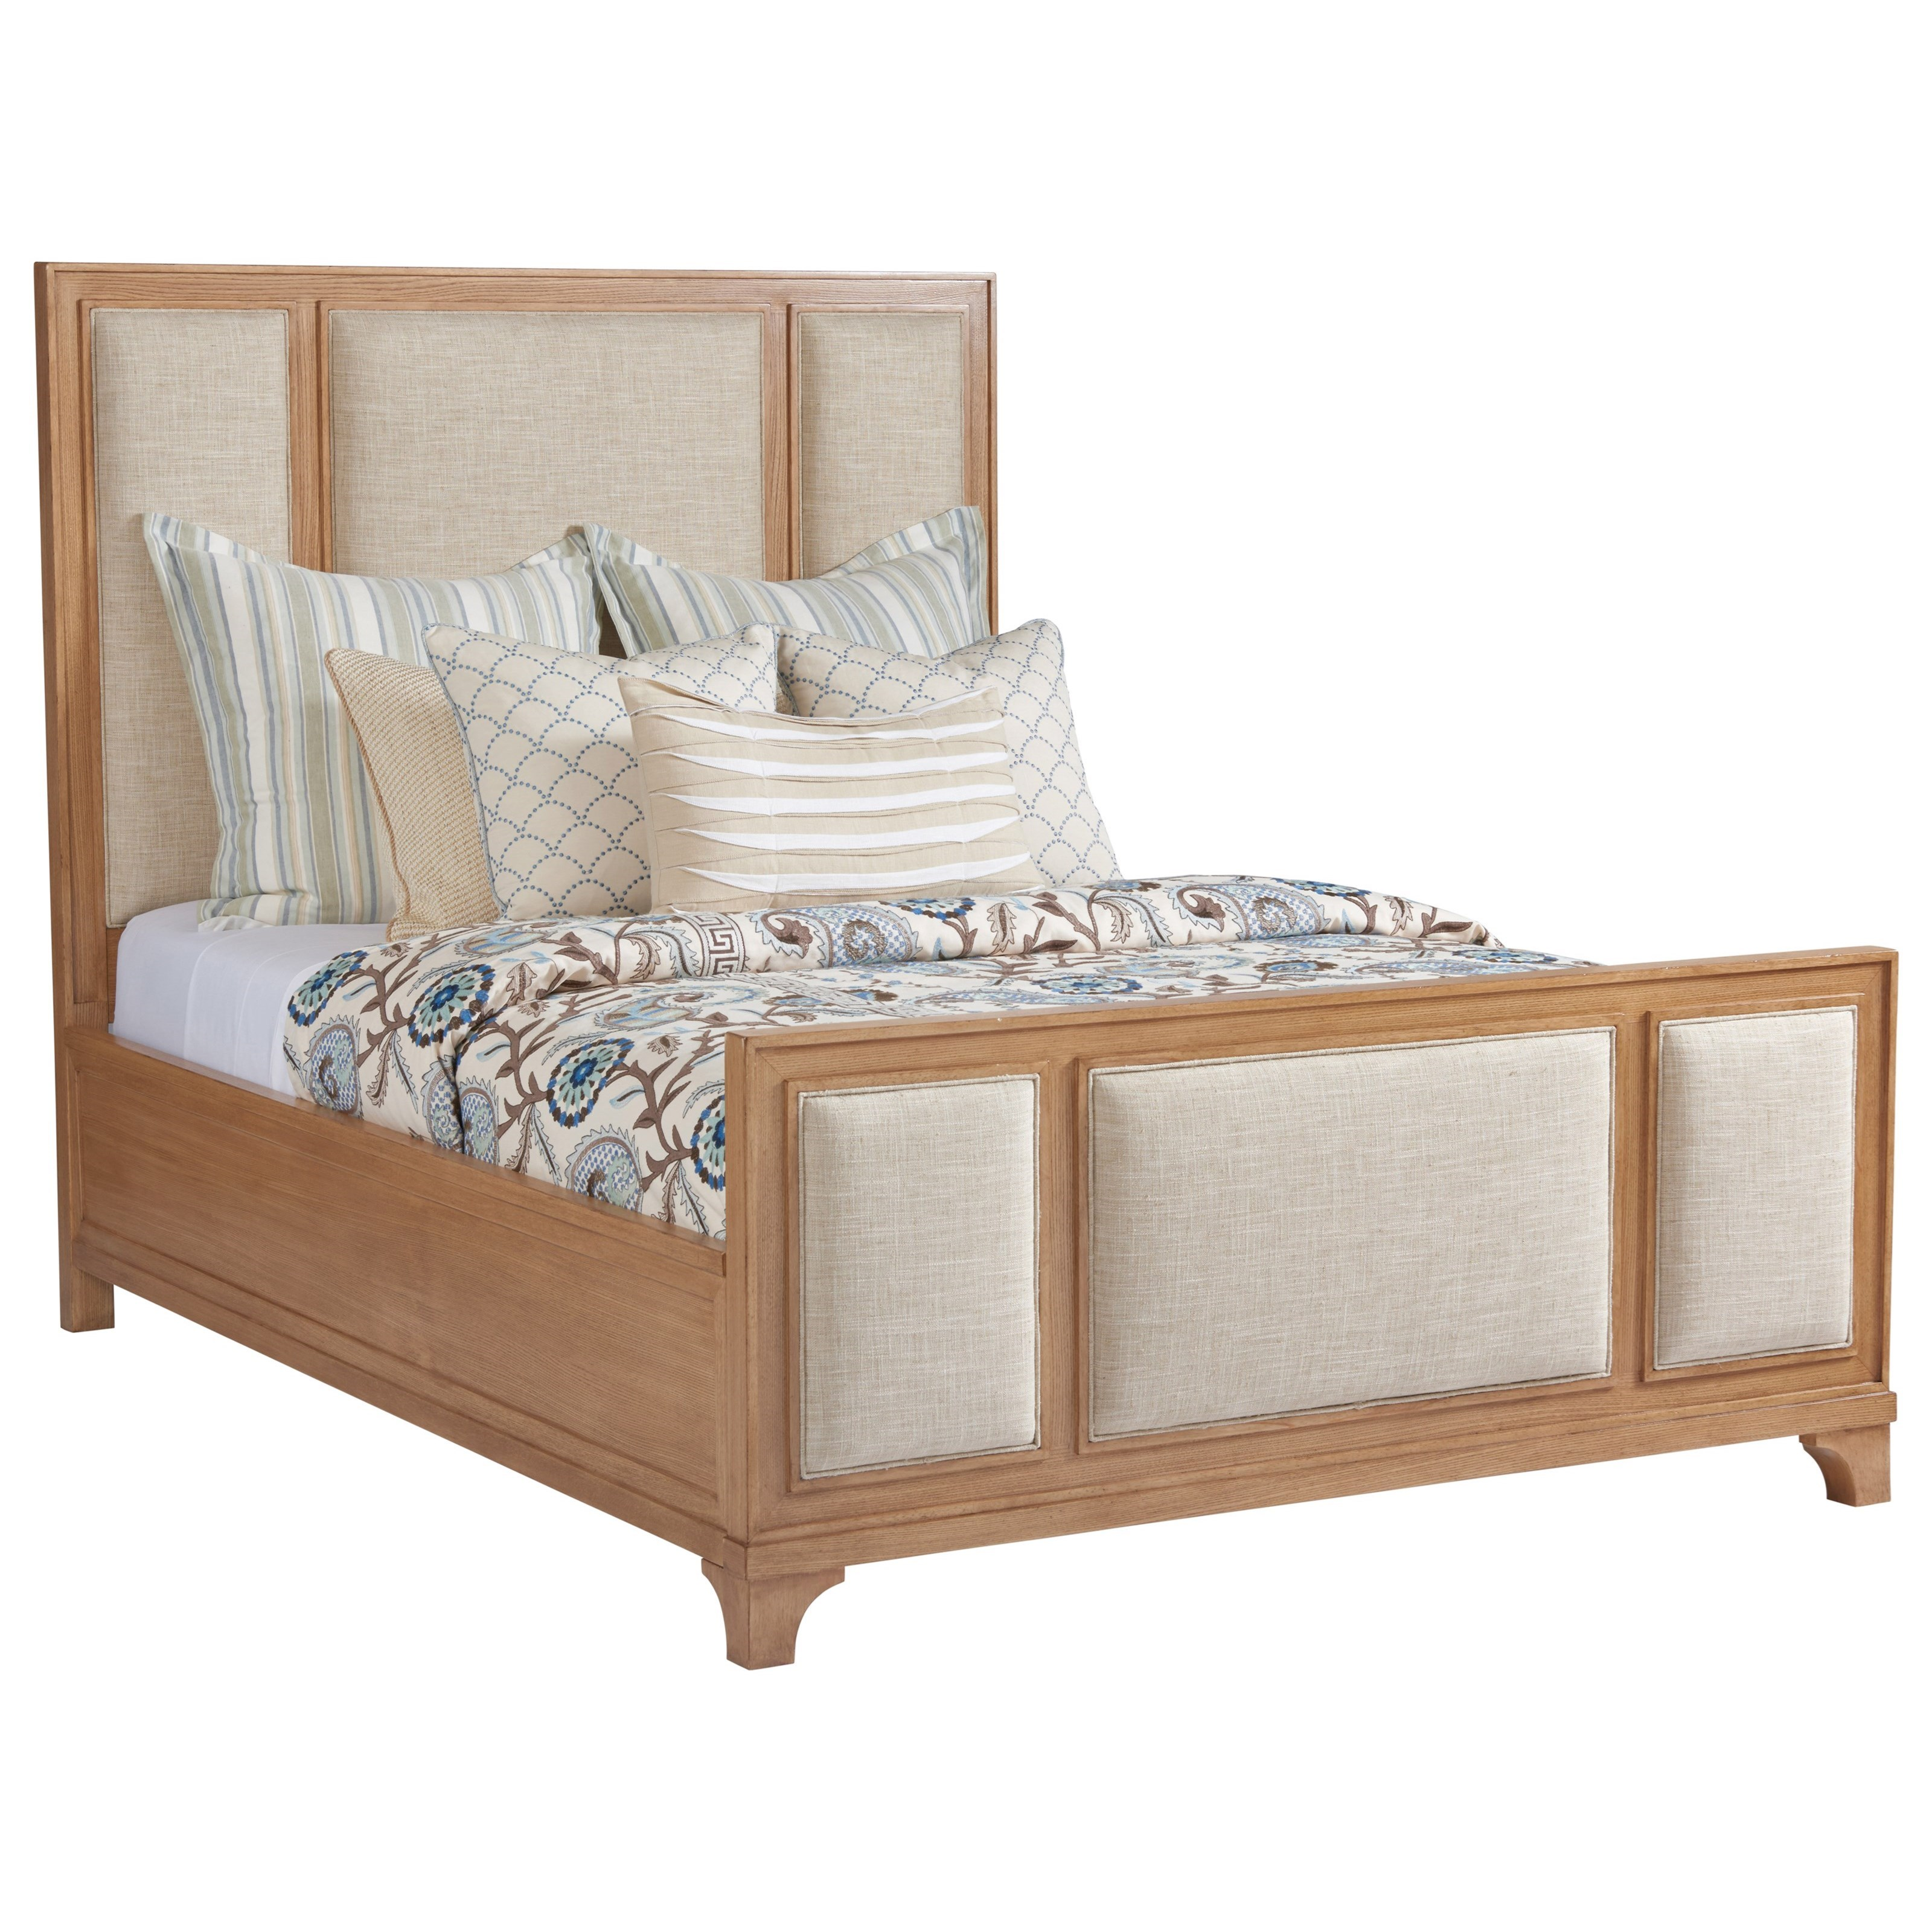 Barclay Butera Newport Crystal Cove Upholstered Panel Bed 5/0 Queen - Item Number: 920-133C